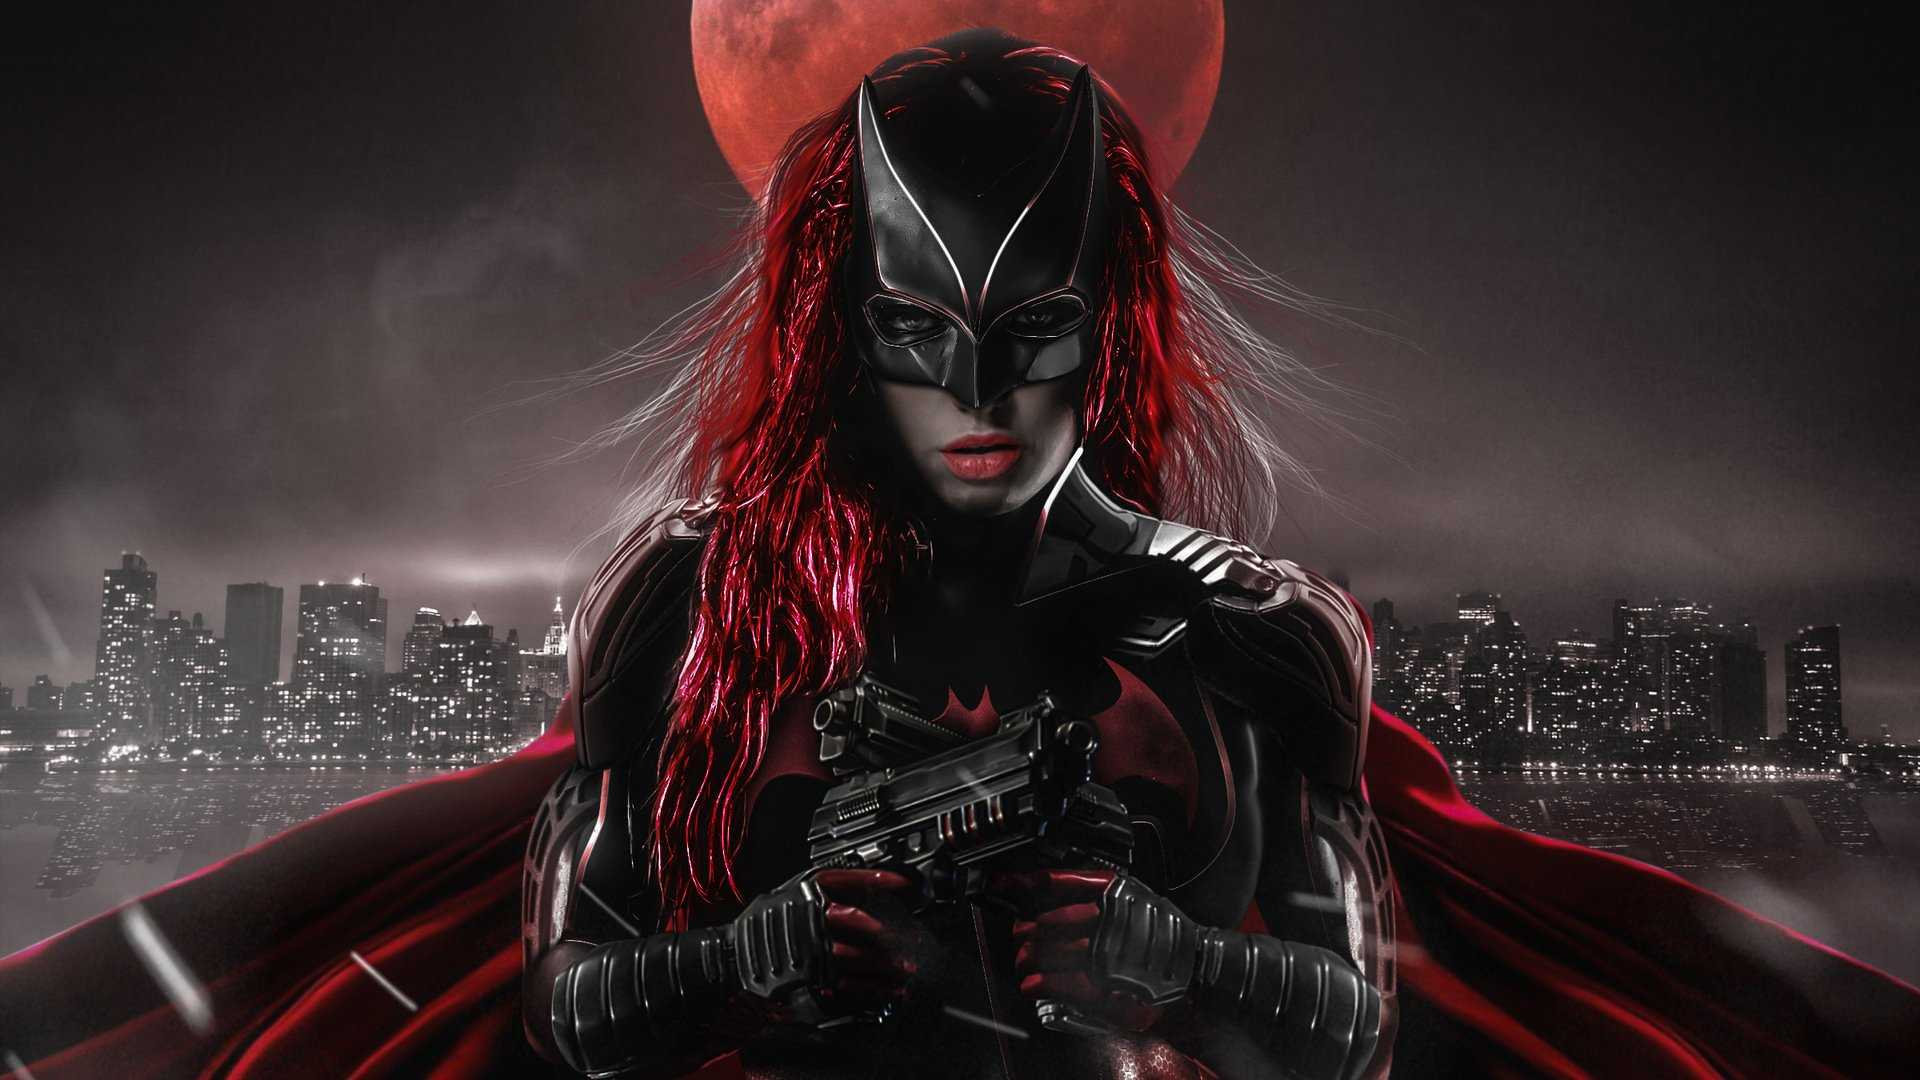 Ruby Rose AS Batwoman Artwork HD